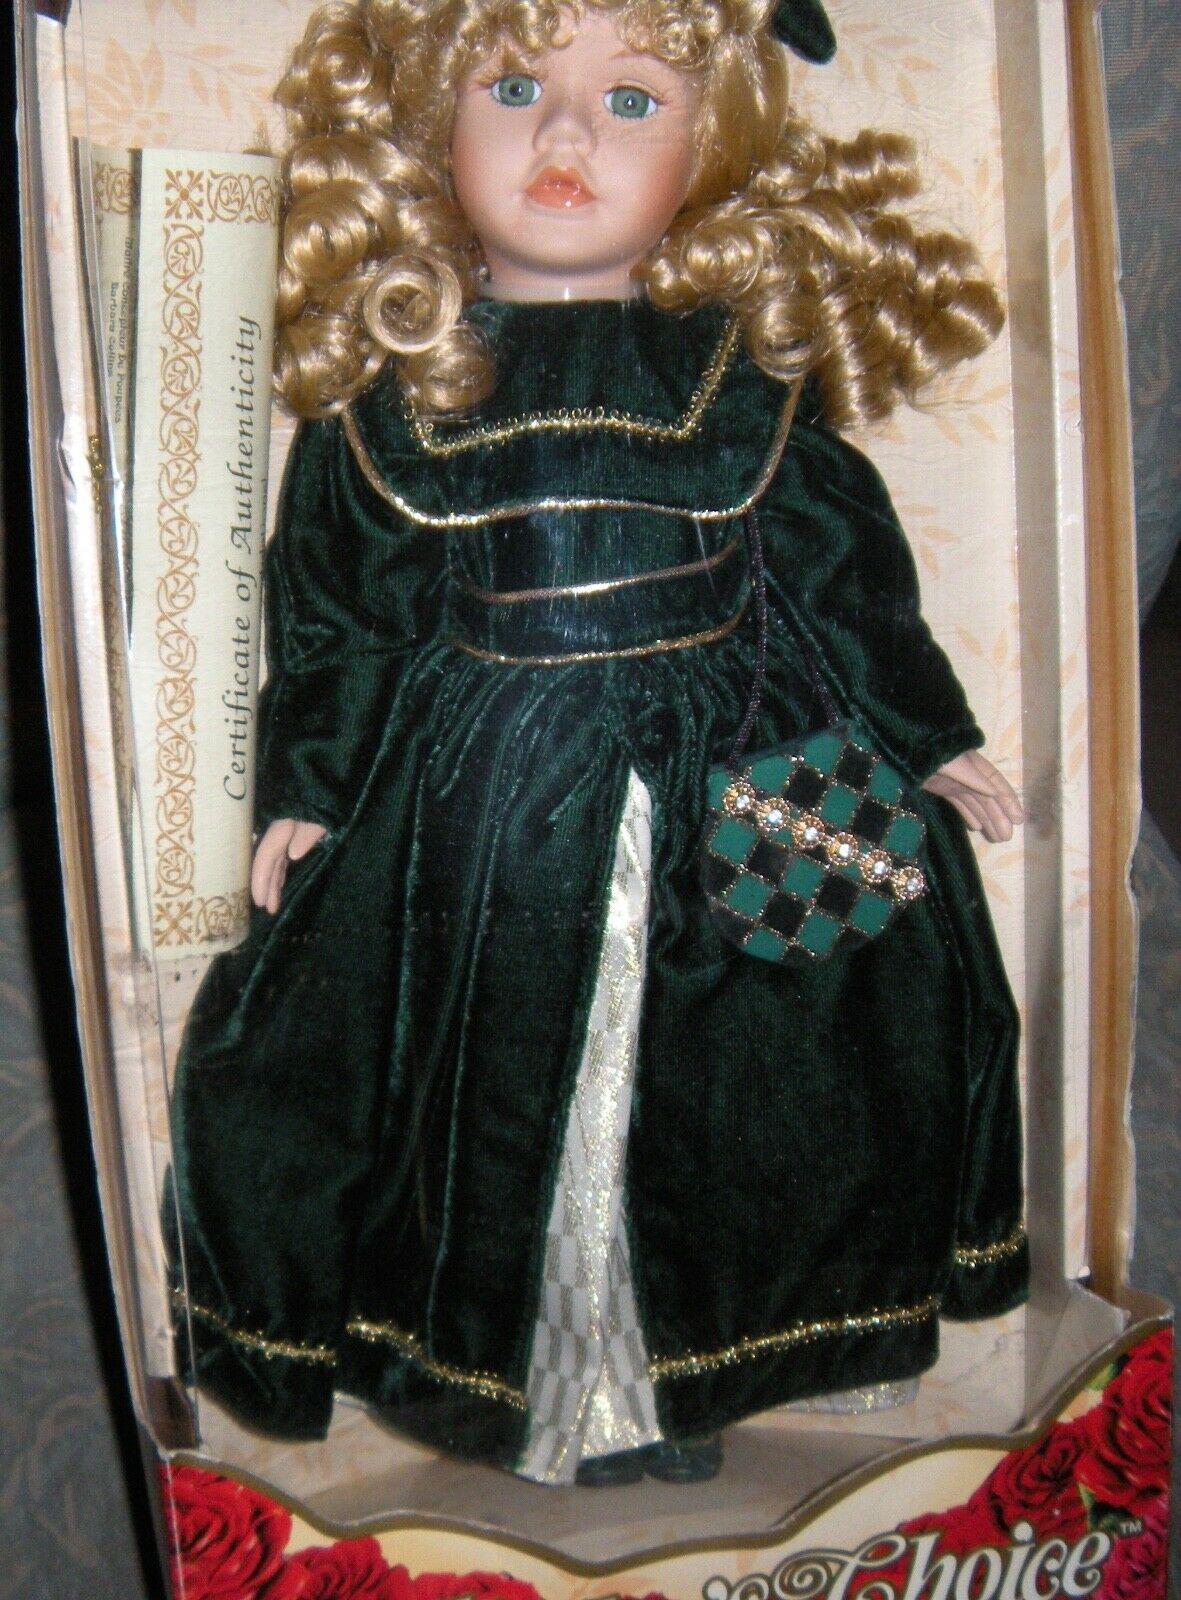 Collector's Choice Genuine Fine Bisque Porcelain Doll 16